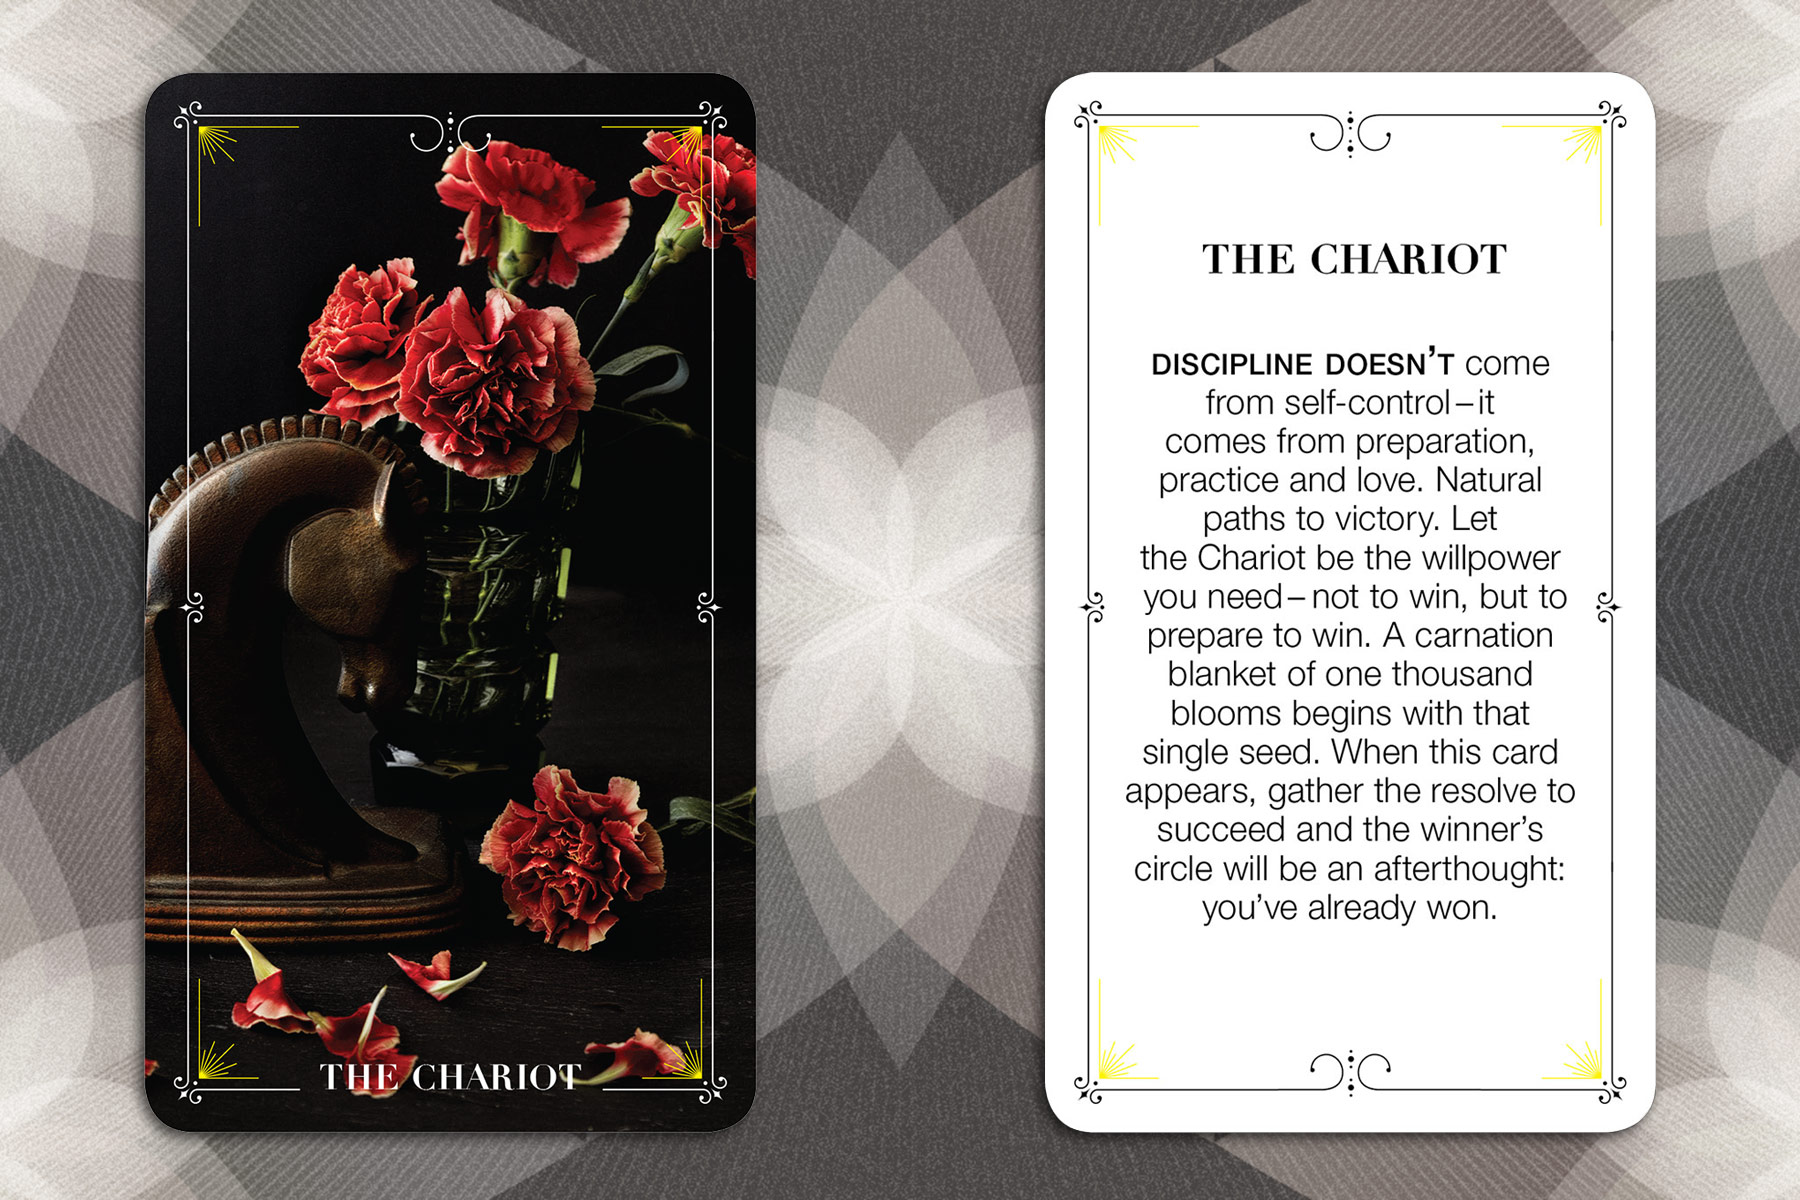 009_BloomTarot_TheChariot